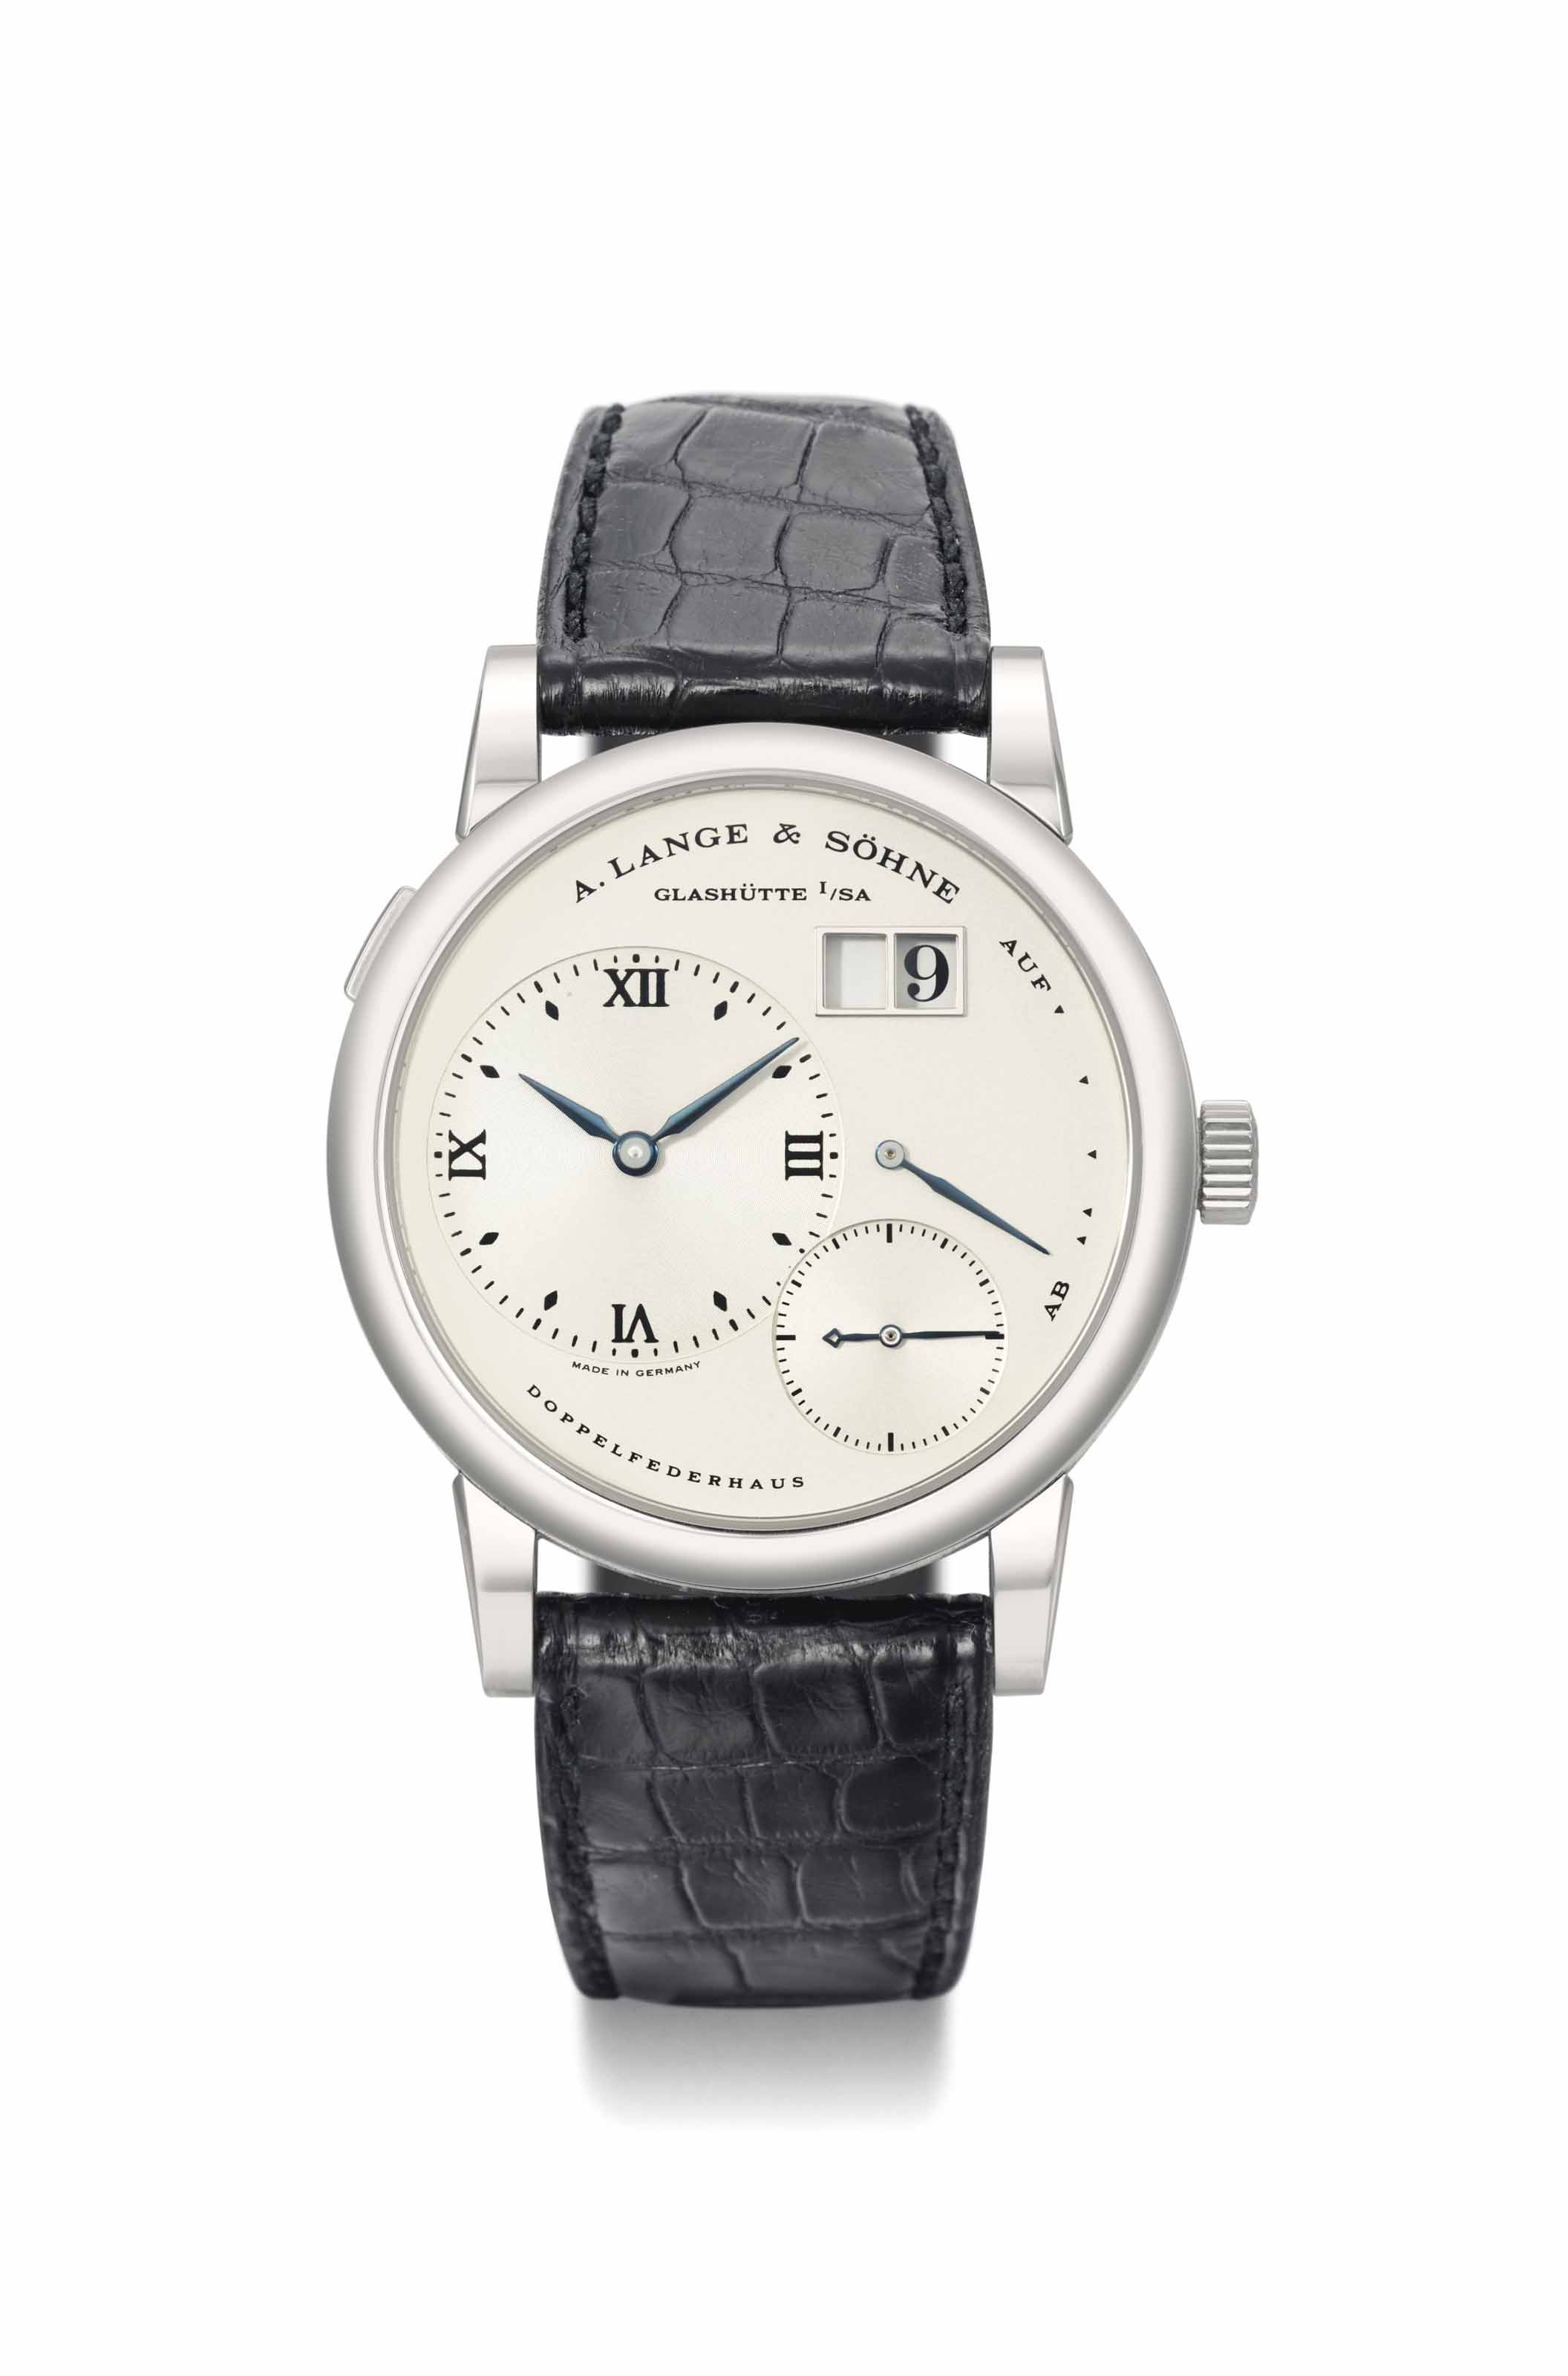 A. Lange & Söhne. A highly limited and very attractive stainless steel twin-barrel wristwatch with oversized date and power reserve